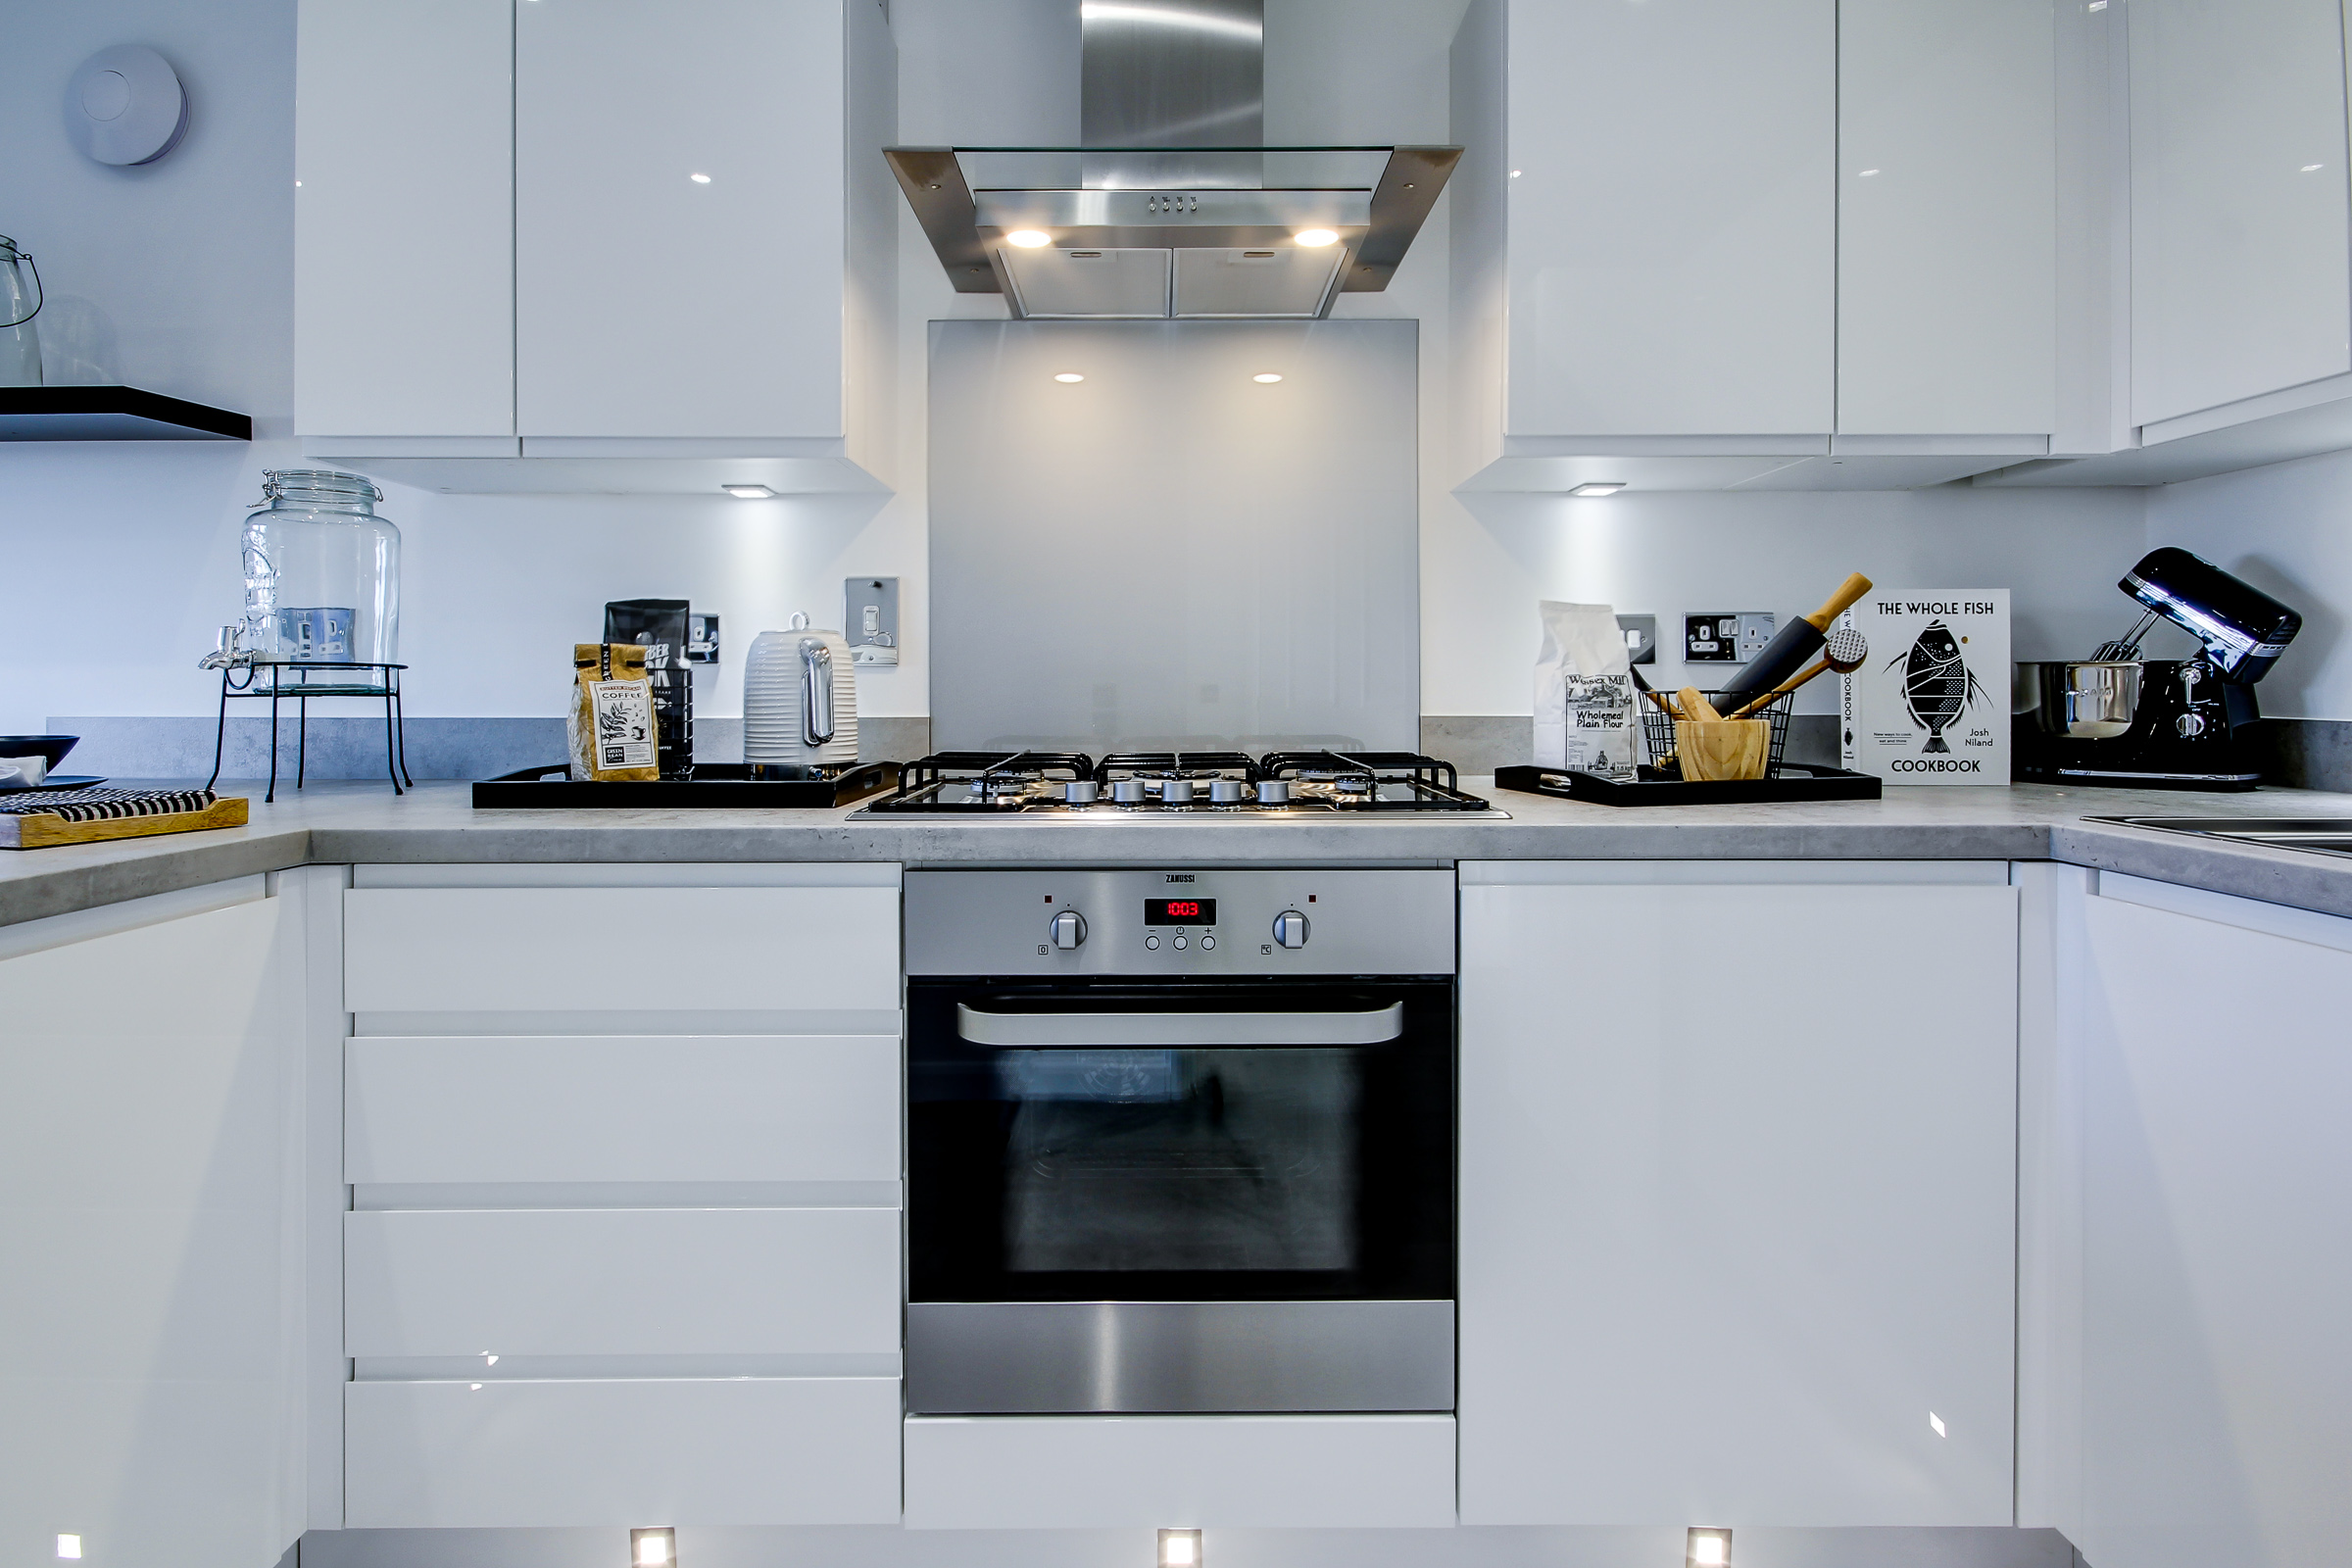 TWES_Calderwood_Fairbairn_Kitchen 1